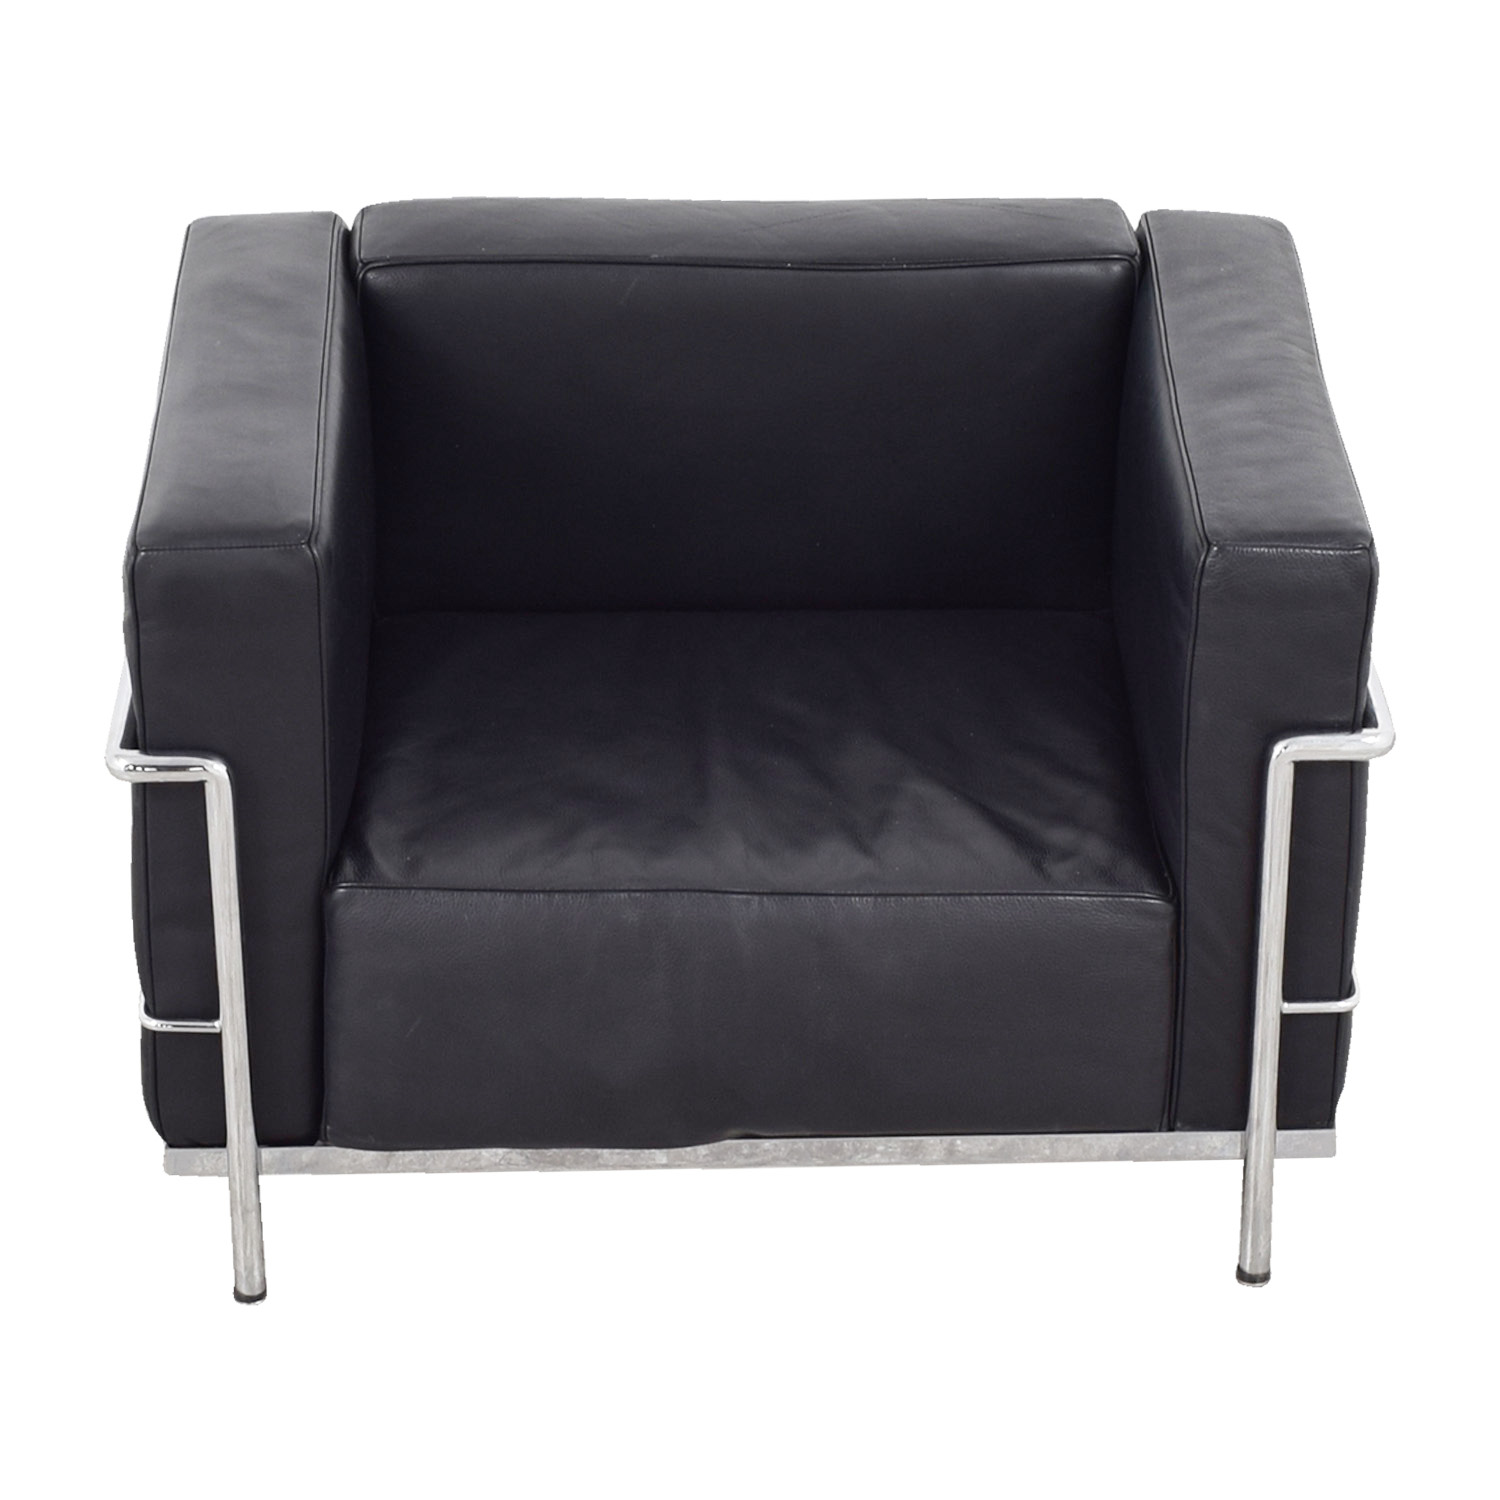 79 off le corbusier replica black lounge chair chairs for Le corbusier replica